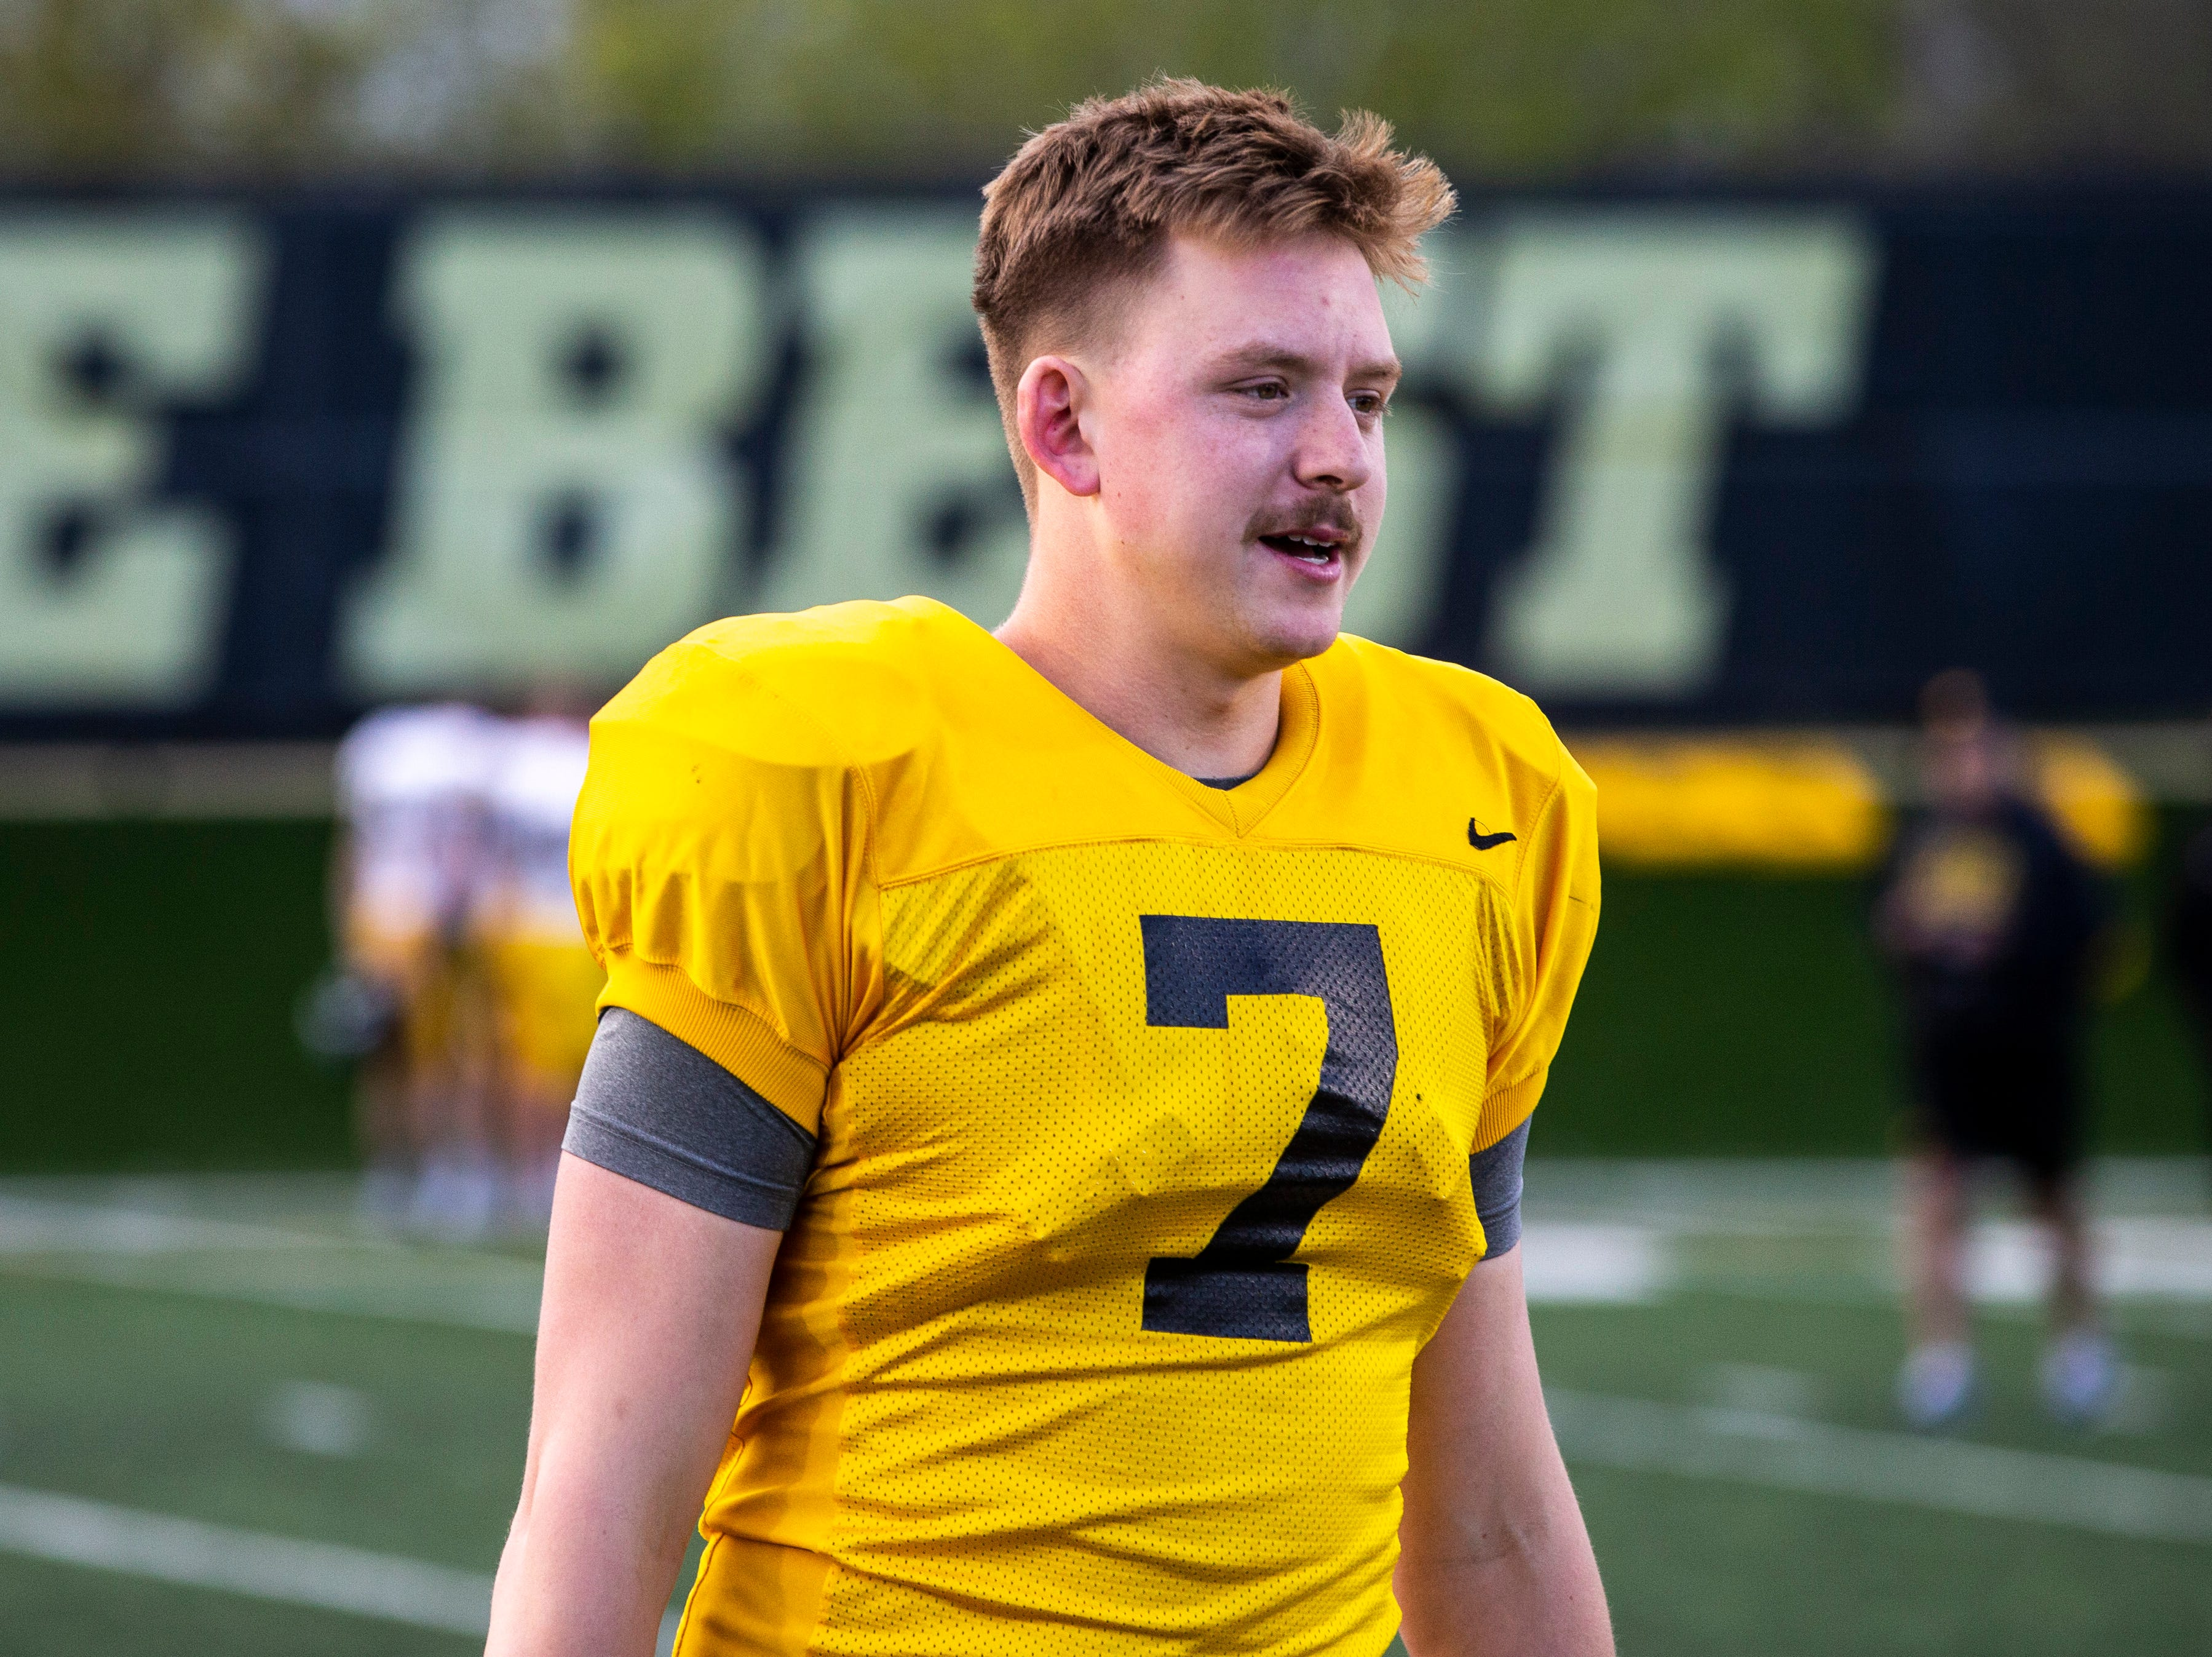 Iowa quarterback Spencer Petras (7) is pictured during the final spring football practice, Friday, April 26, 2019, at the University of Iowa outdoor practice facility in Iowa City, Iowa.